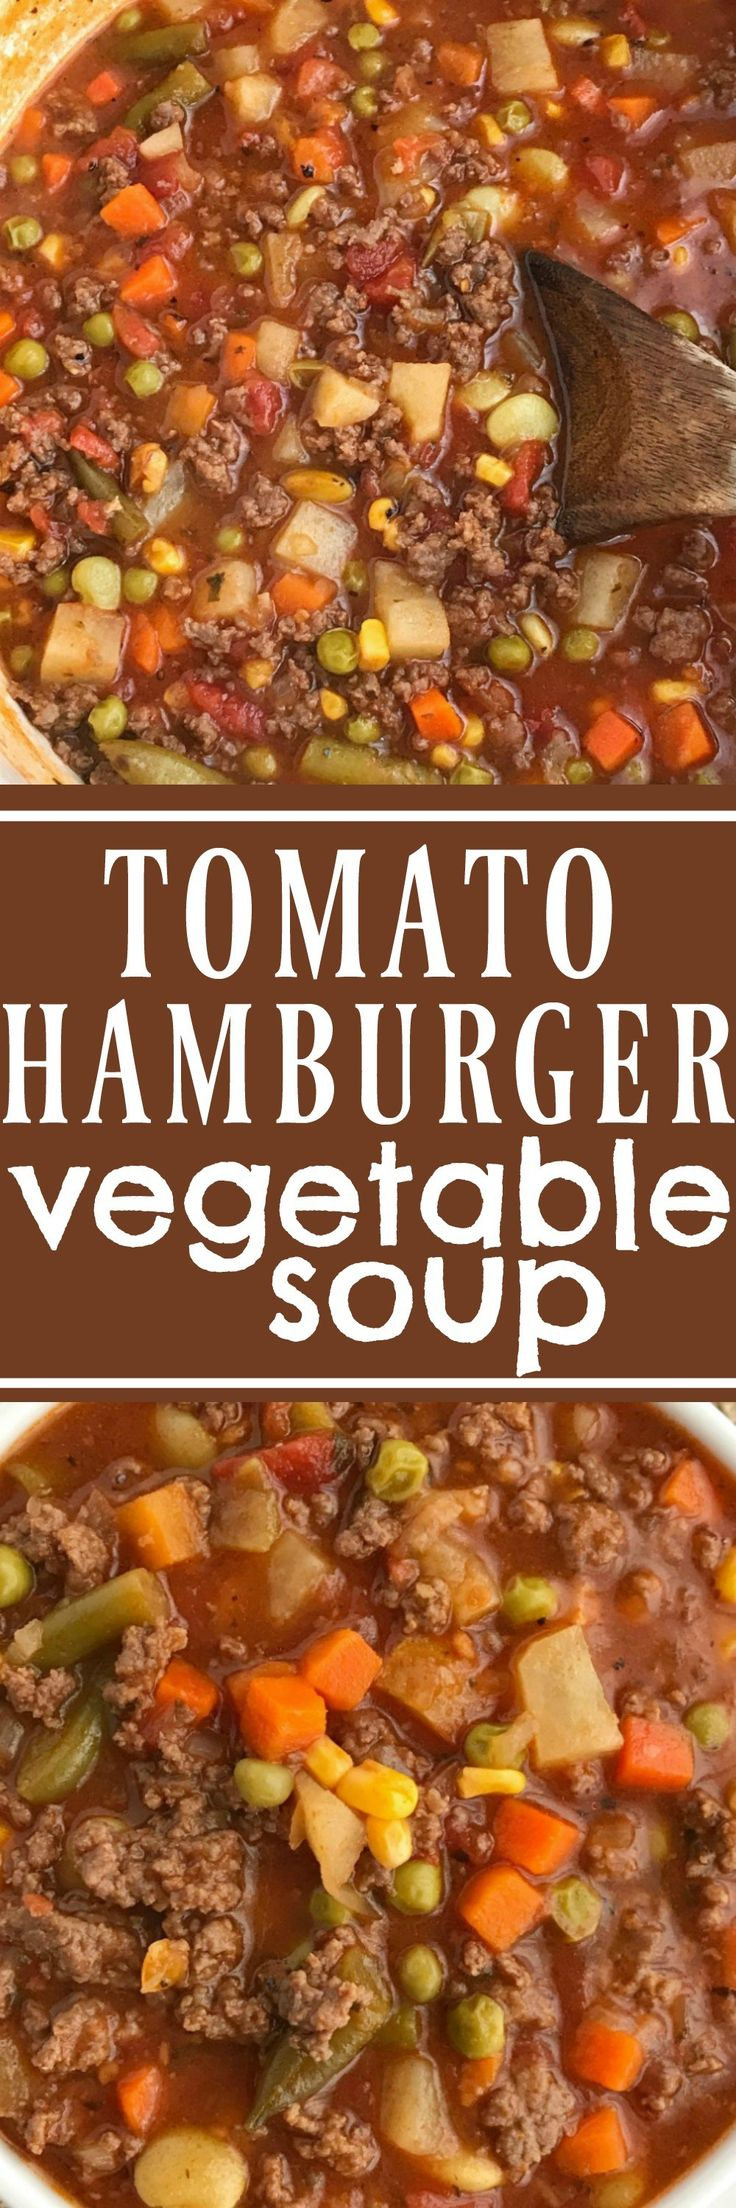 Hamburger Vegetable Soup. With hamburger, tomatoes, and loaded with veggies.